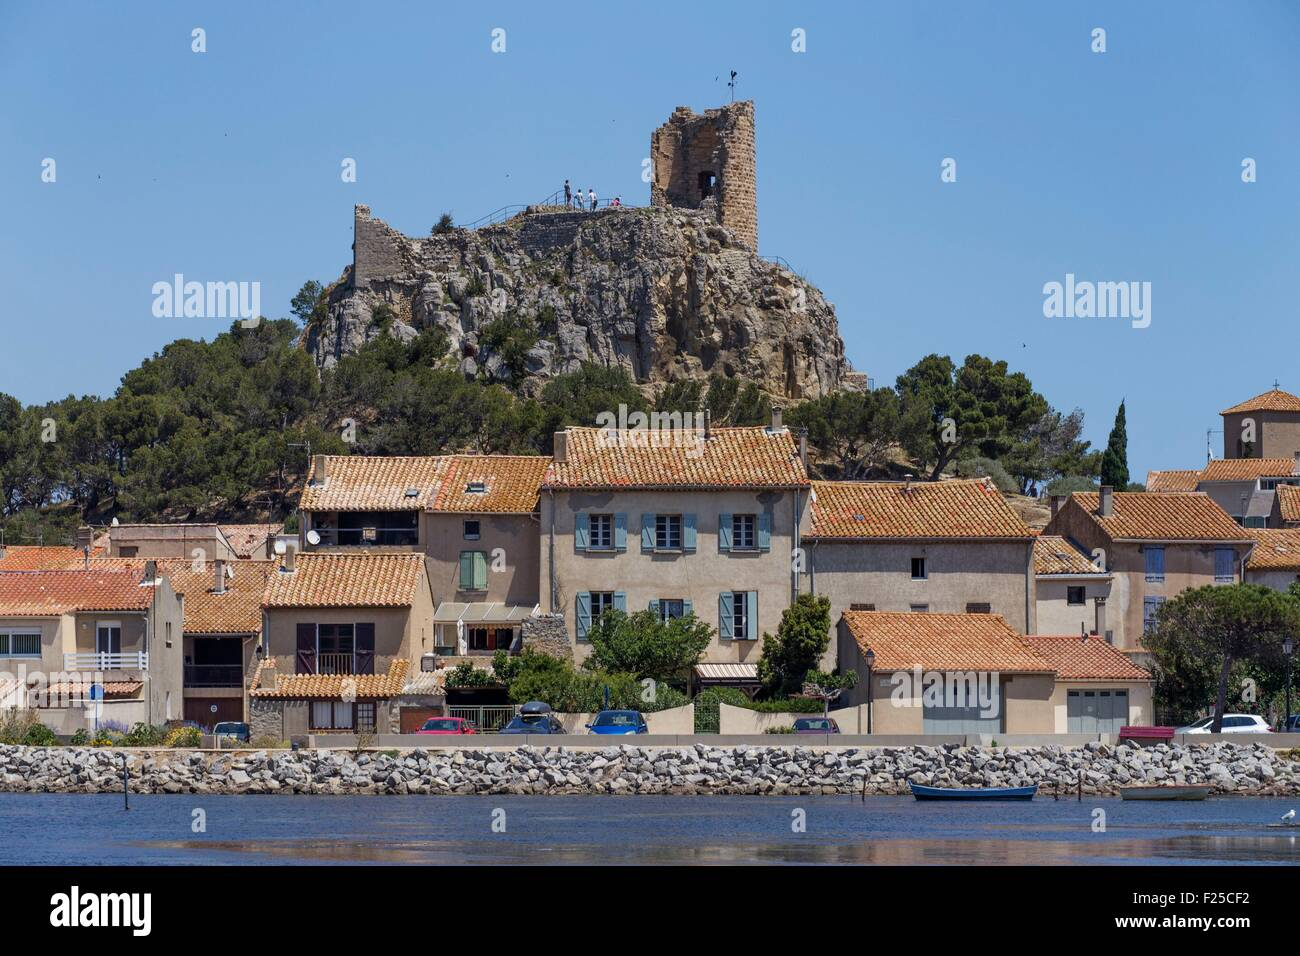 France, Aude, Corbieres, Gruissan, The Old Village, Medieval Military  Fortress For The Coast Watching Dominated By The 13th Century Barberousse  Tower